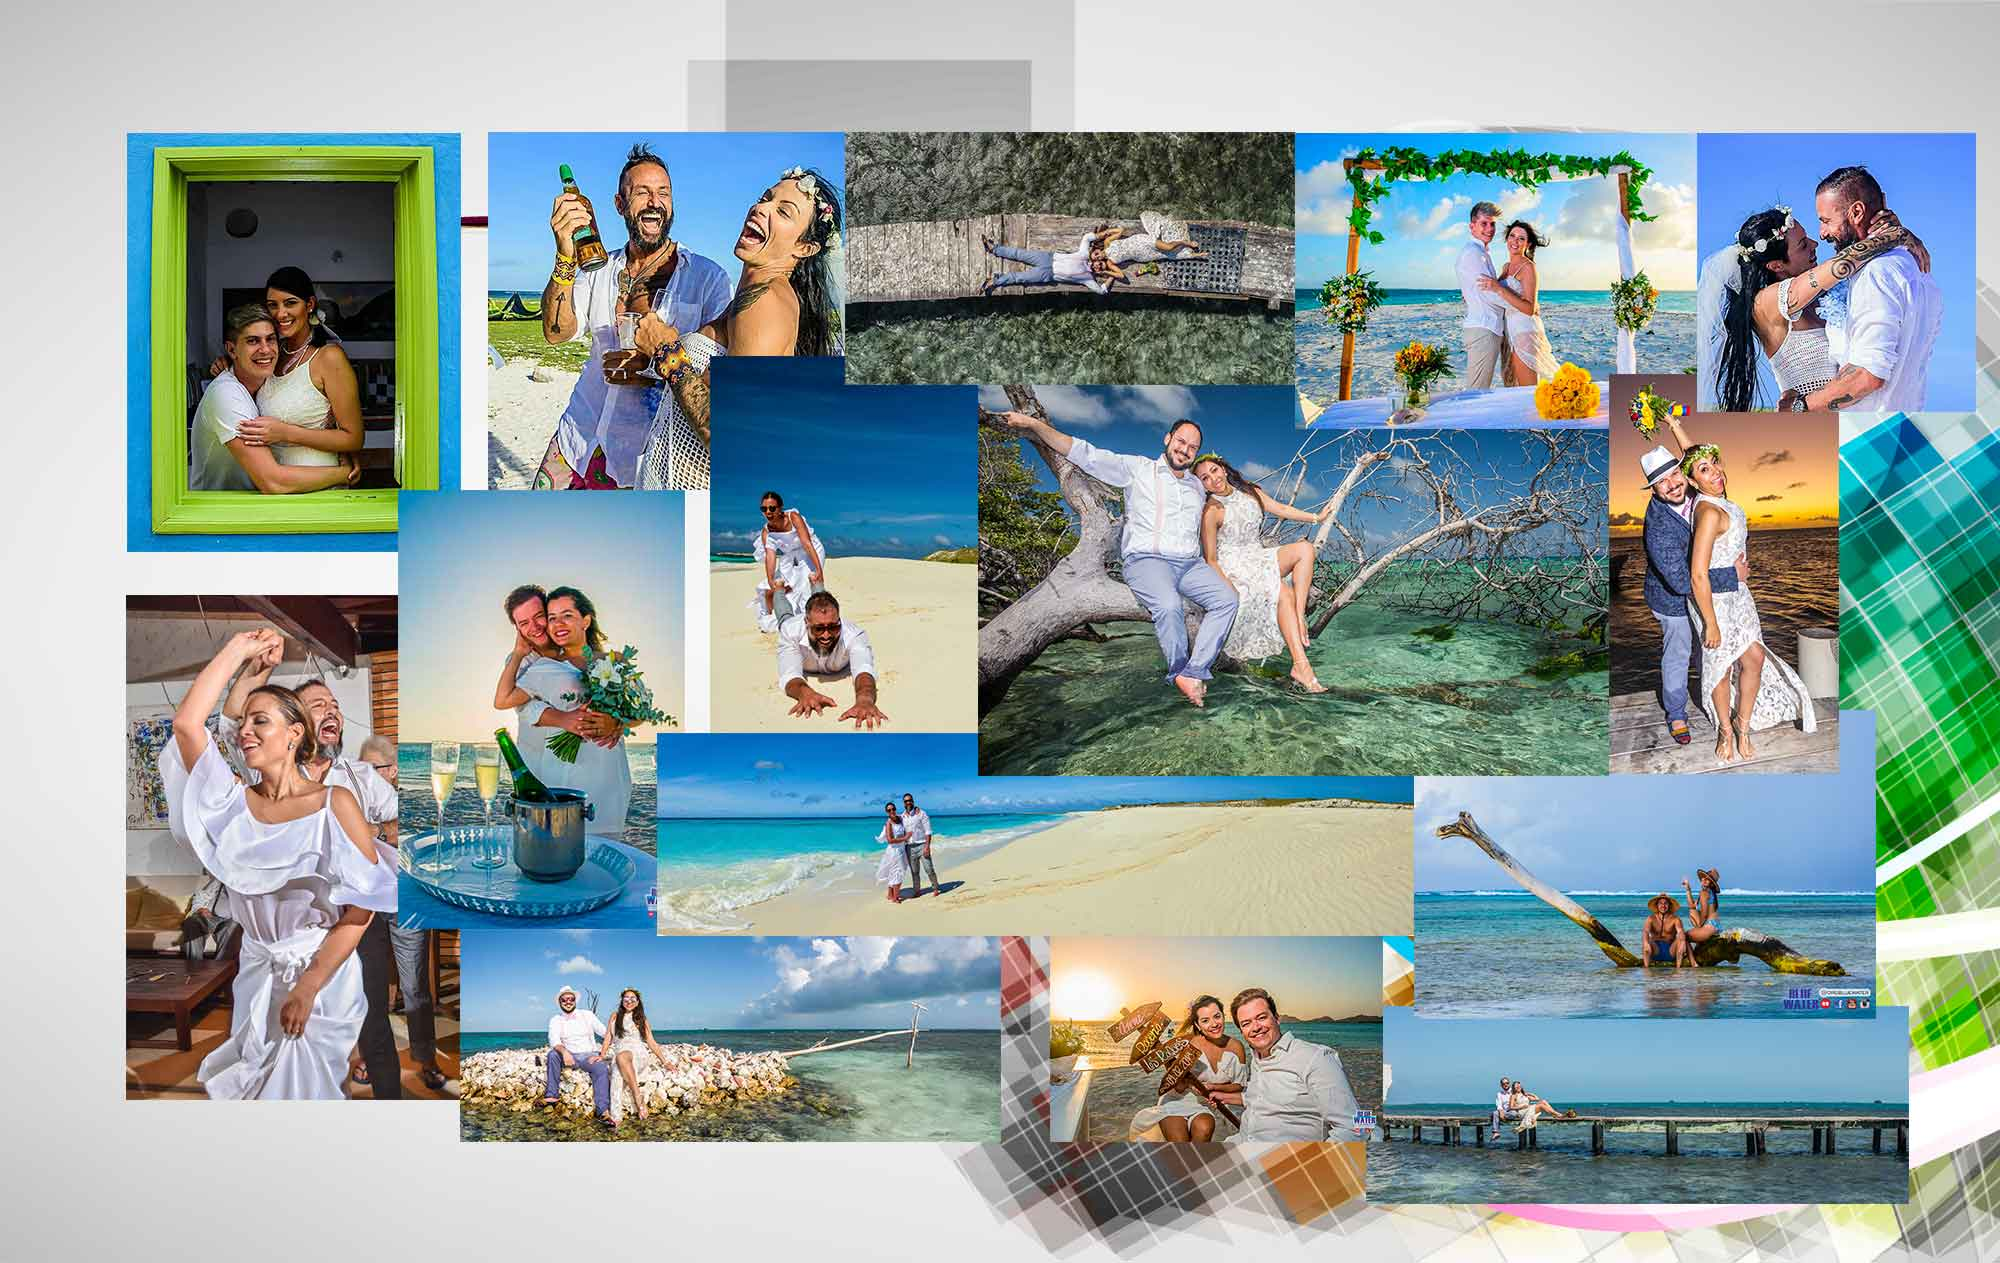 colagge-bodas-Los-Roques-Wedding-Boda-Playa-Caribe-WeddingPhotography-